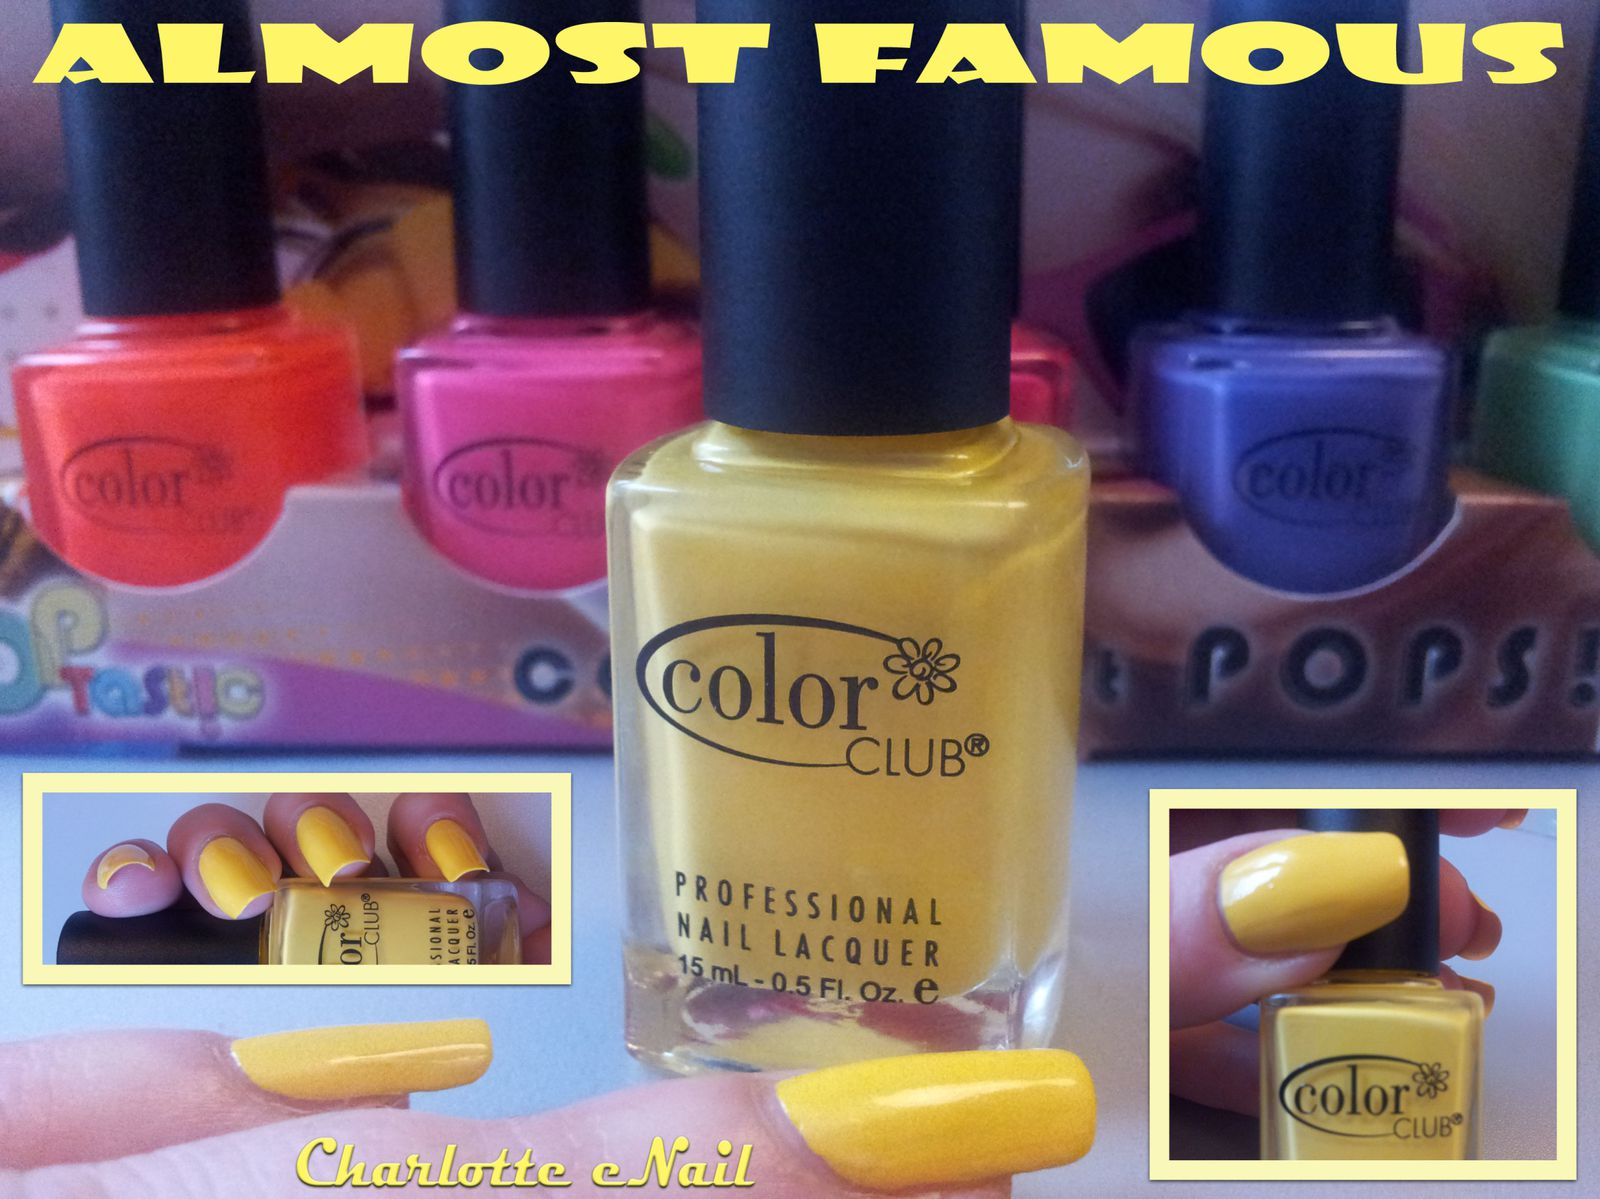 ALMOST FAMOUS (Color Club poptastic)